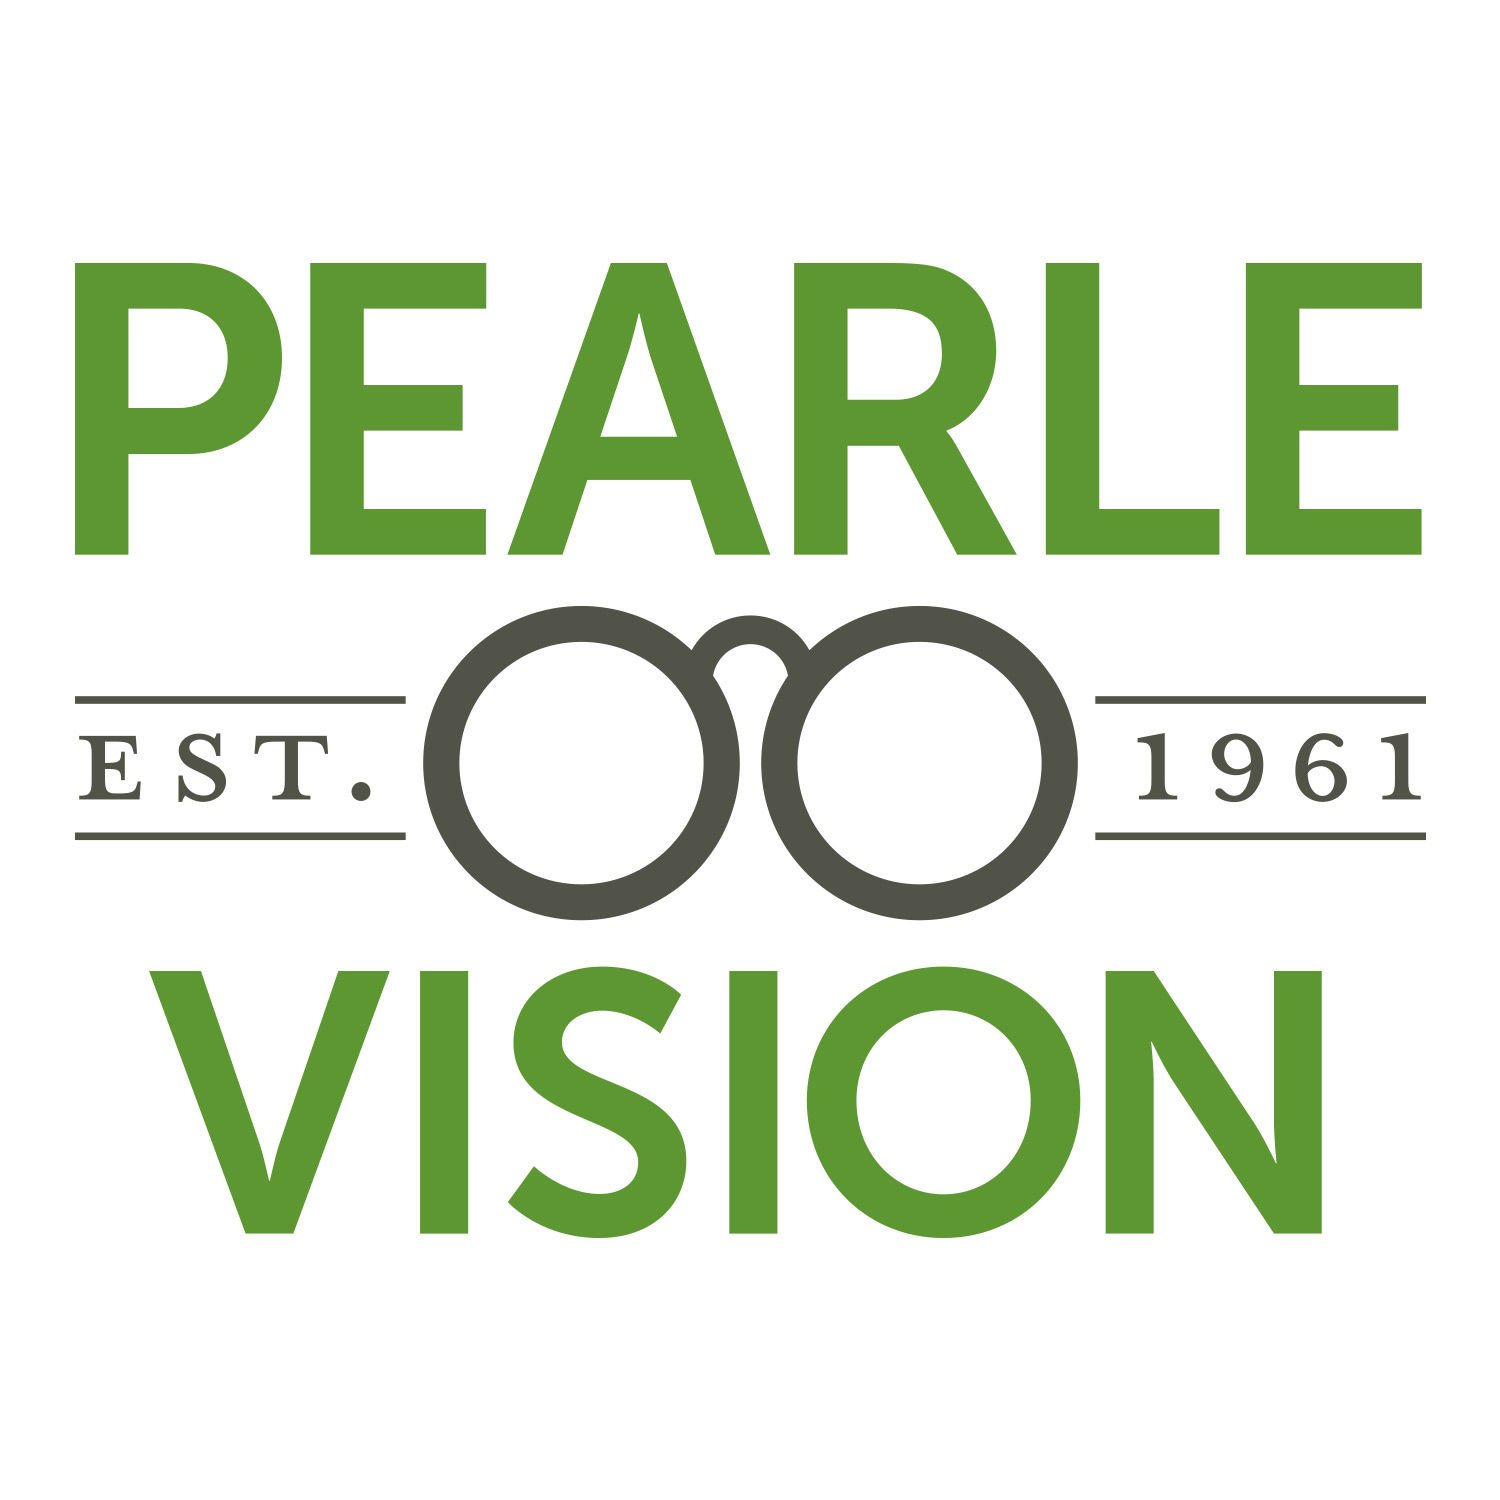 Eye doctors and eye exam services at Pearle Vision ...